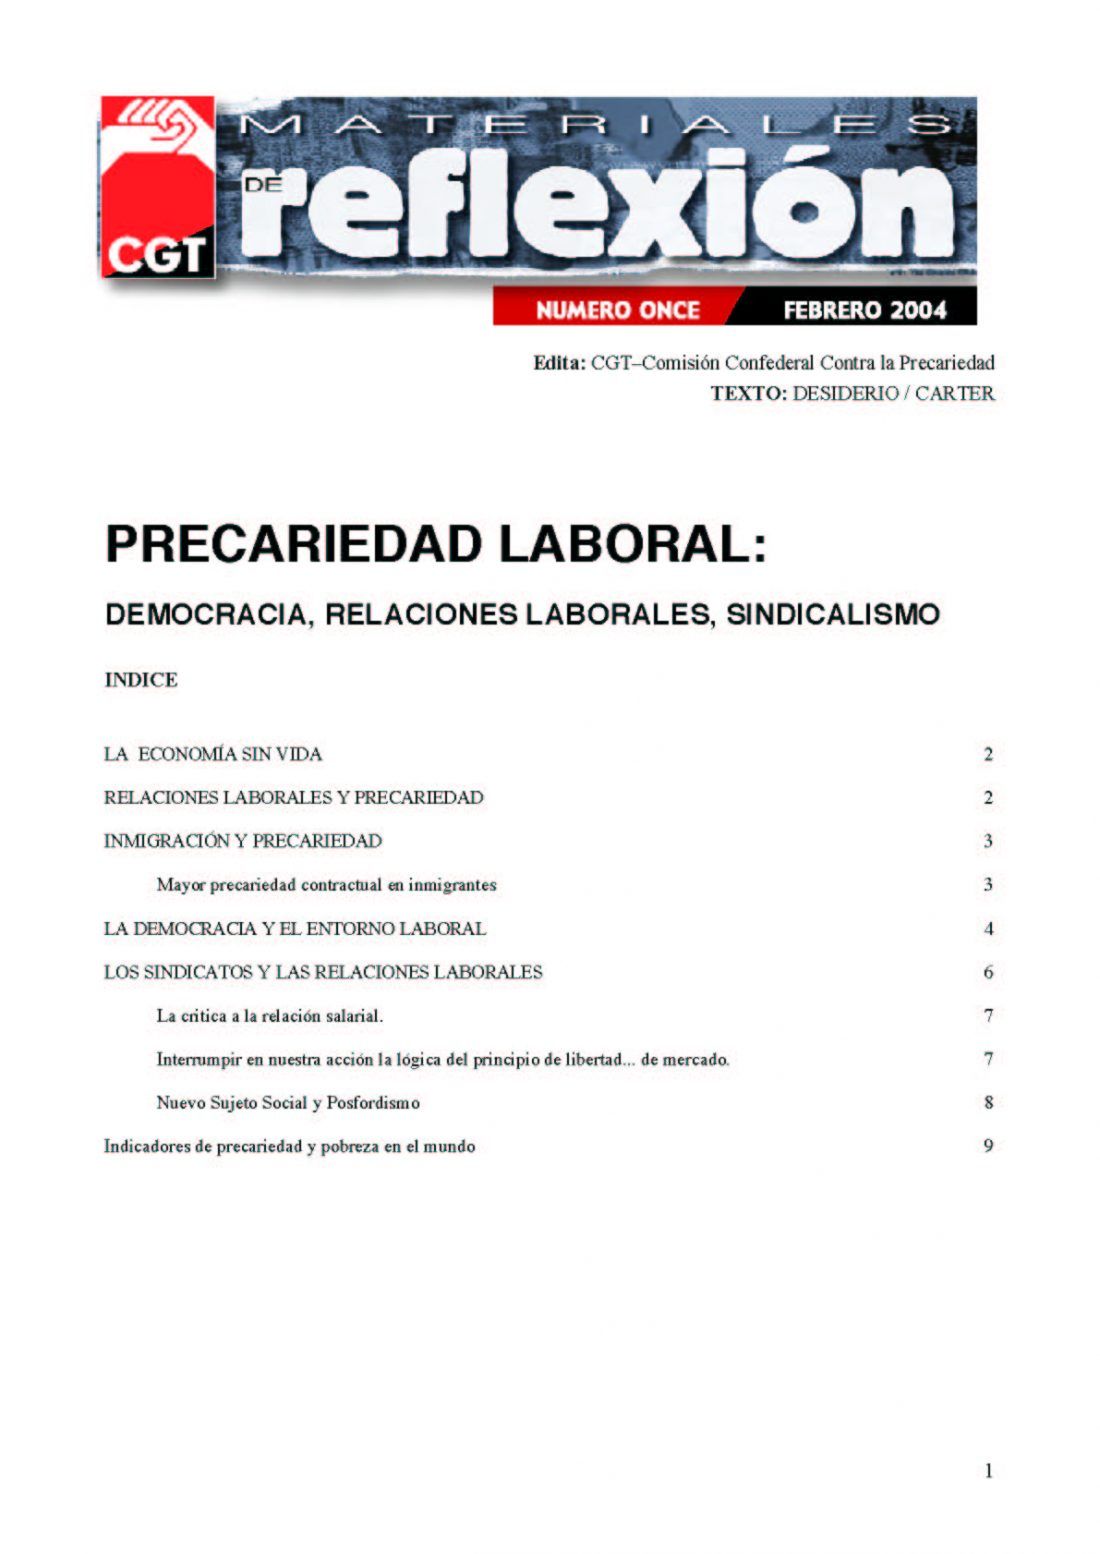 MR 11 Precariedad Laboral.